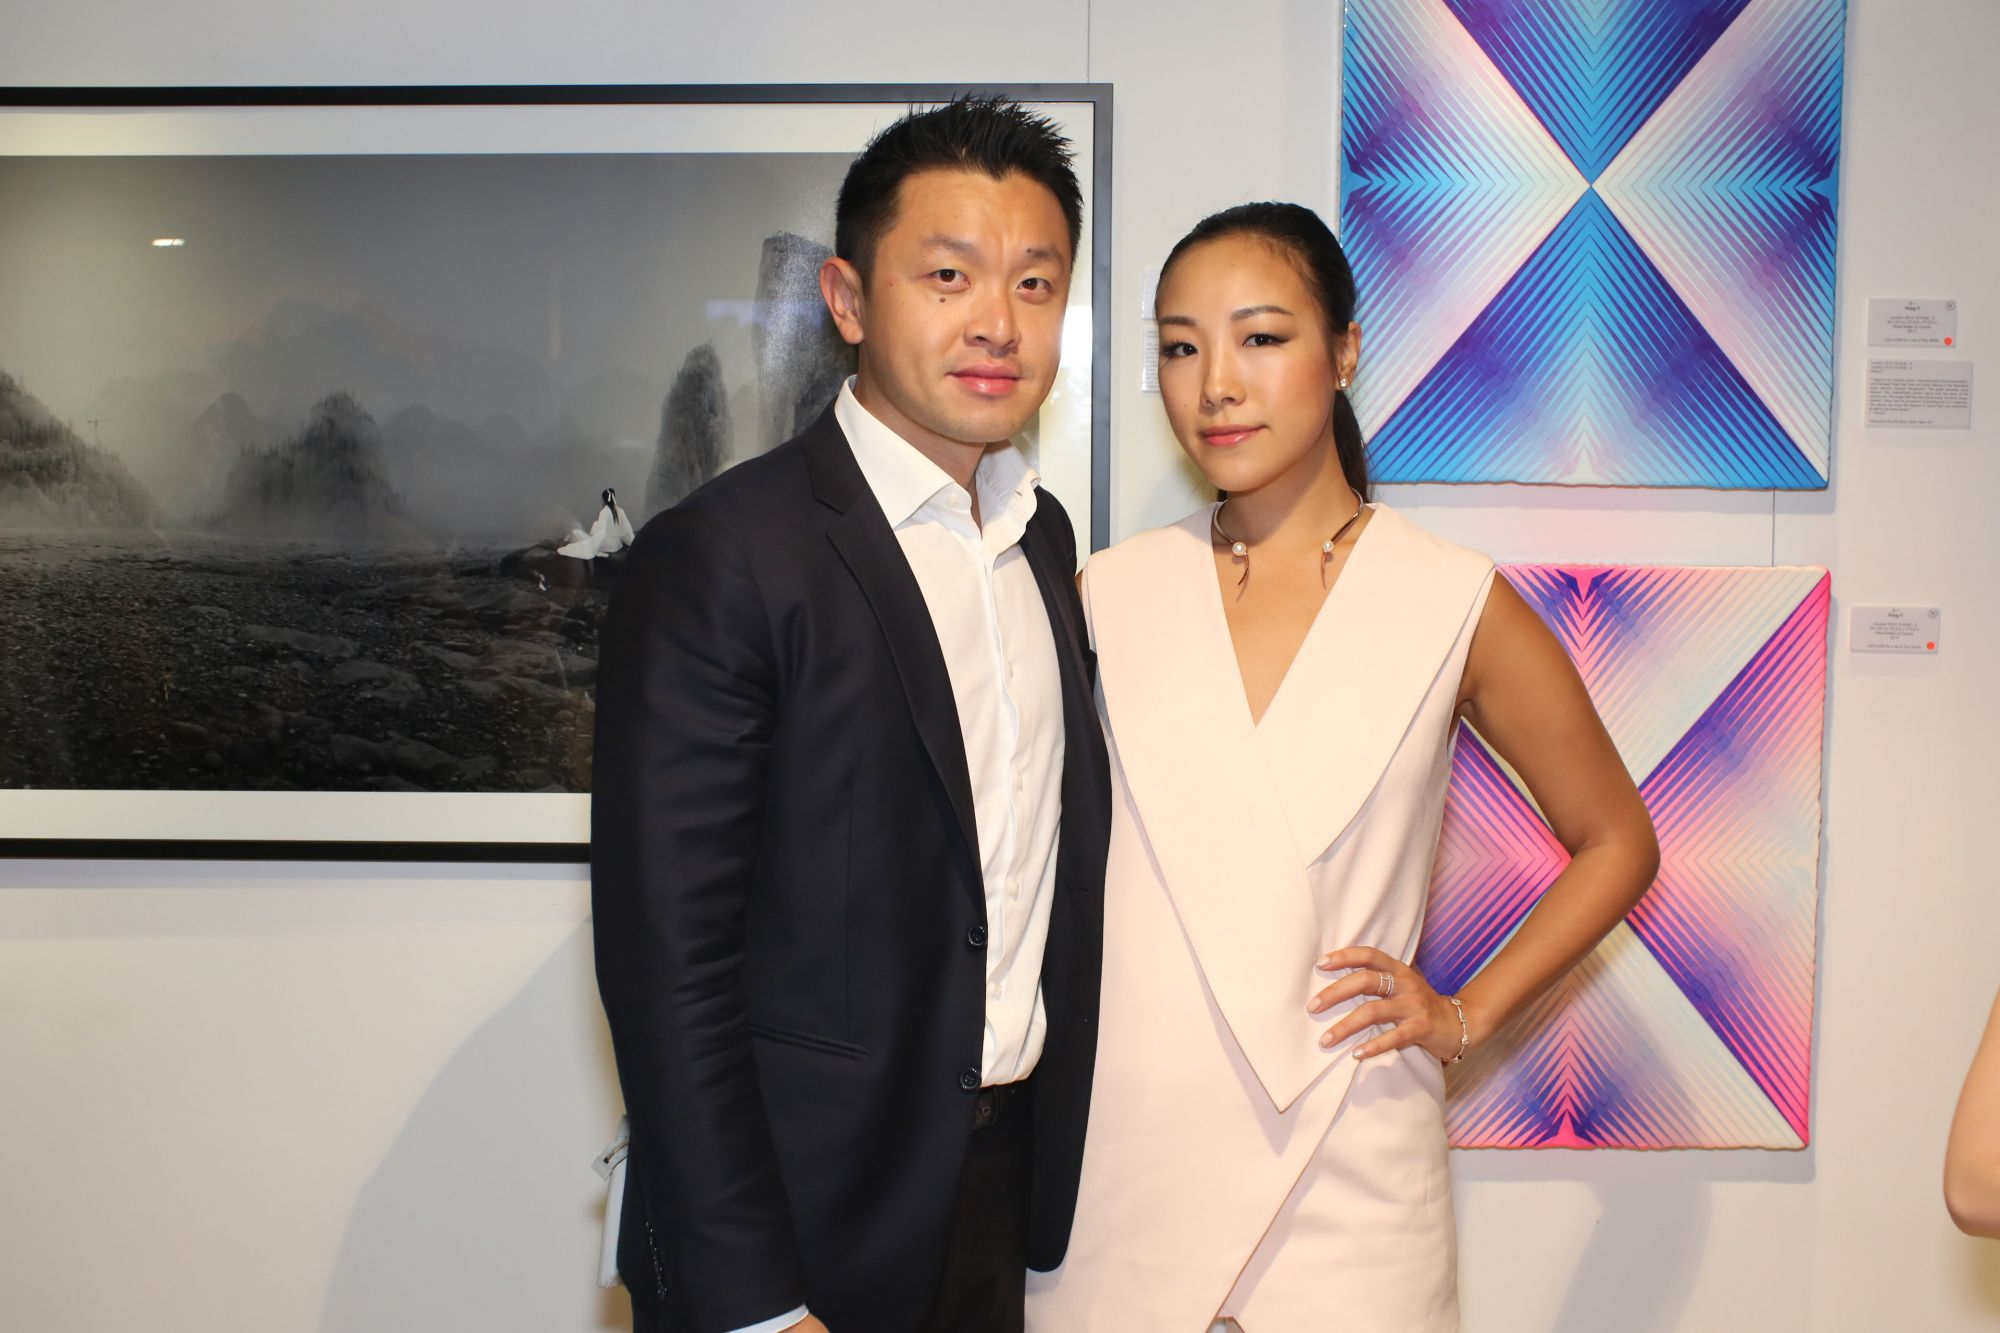 10 Things to Know About Almost-Weds Feiping Chang & Lincoln Li